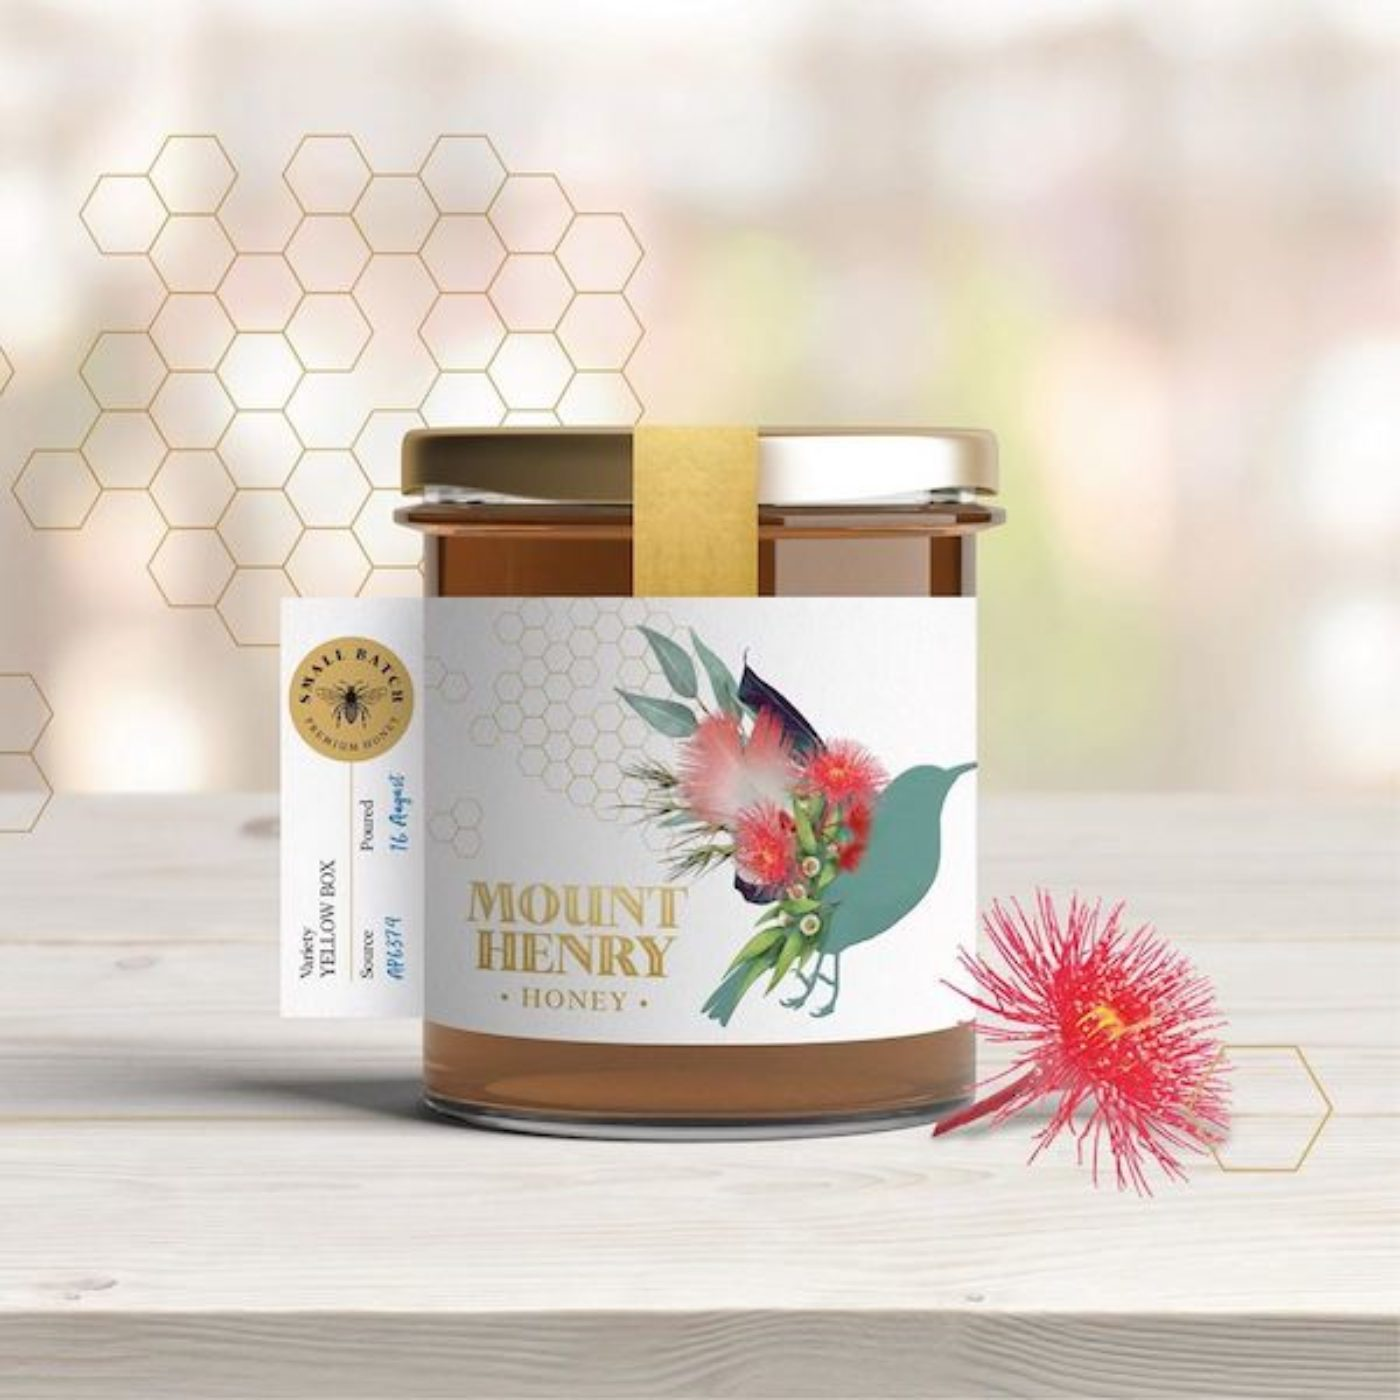 Custom food product labelling with gold foil